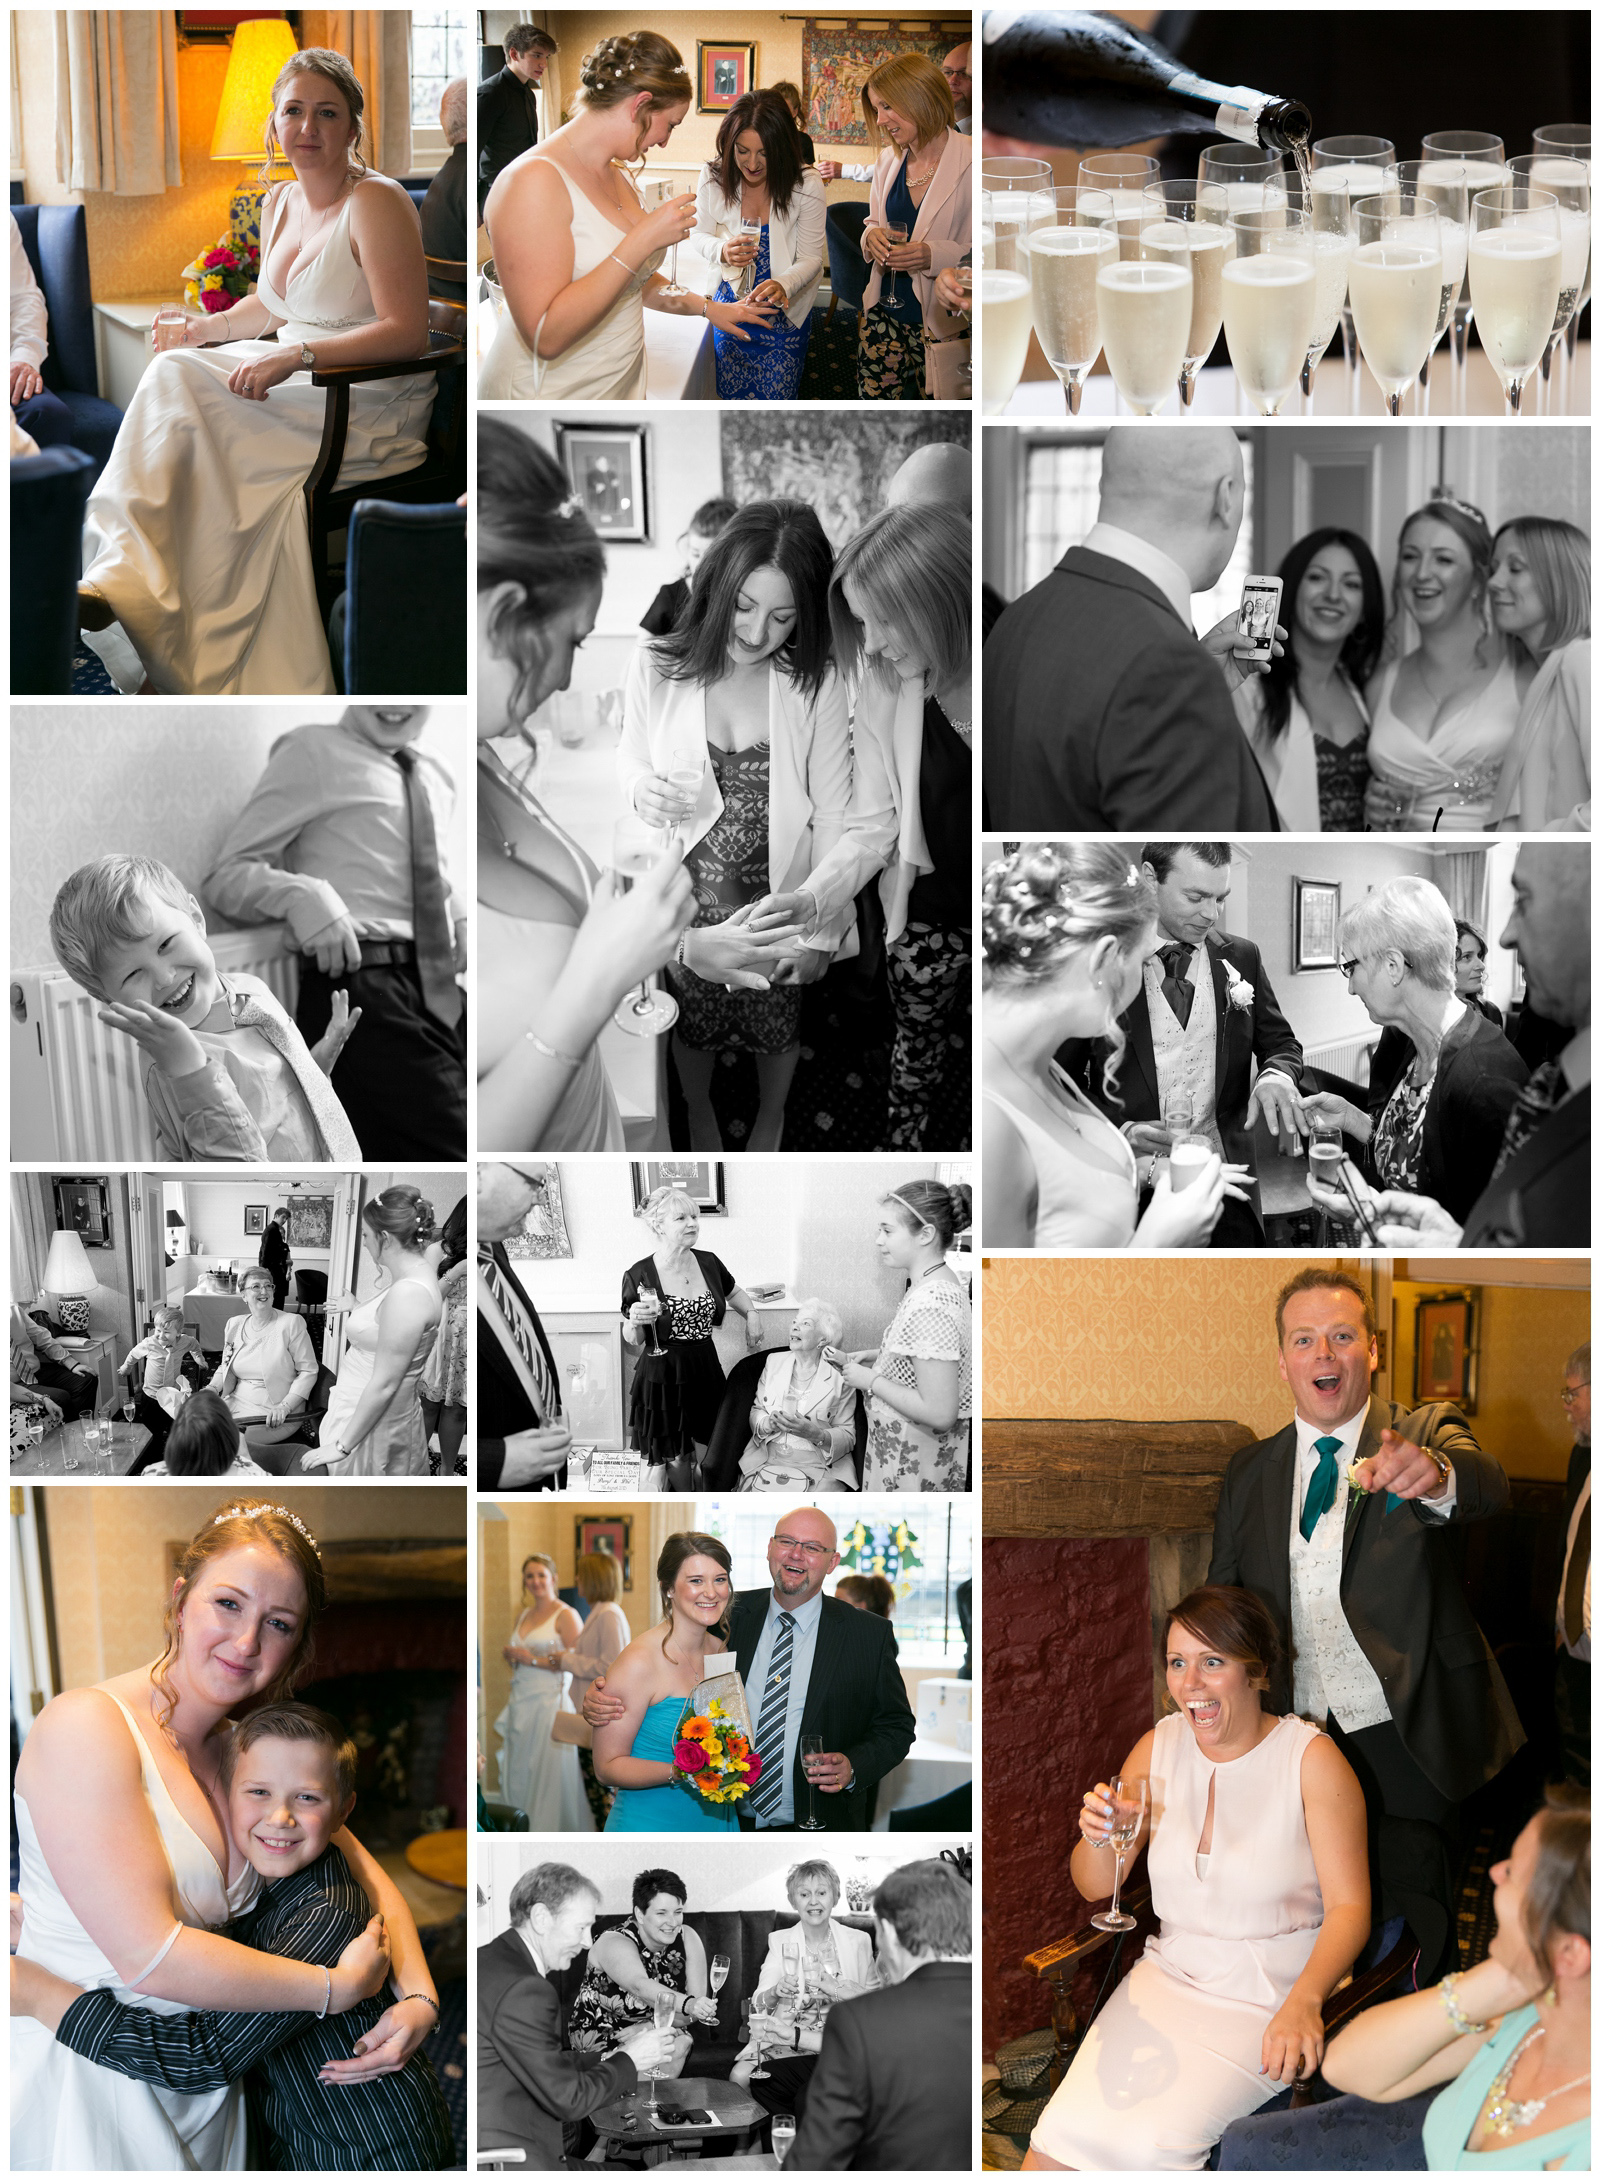 Wedding photography at the Old Hall Hotel in Buxton